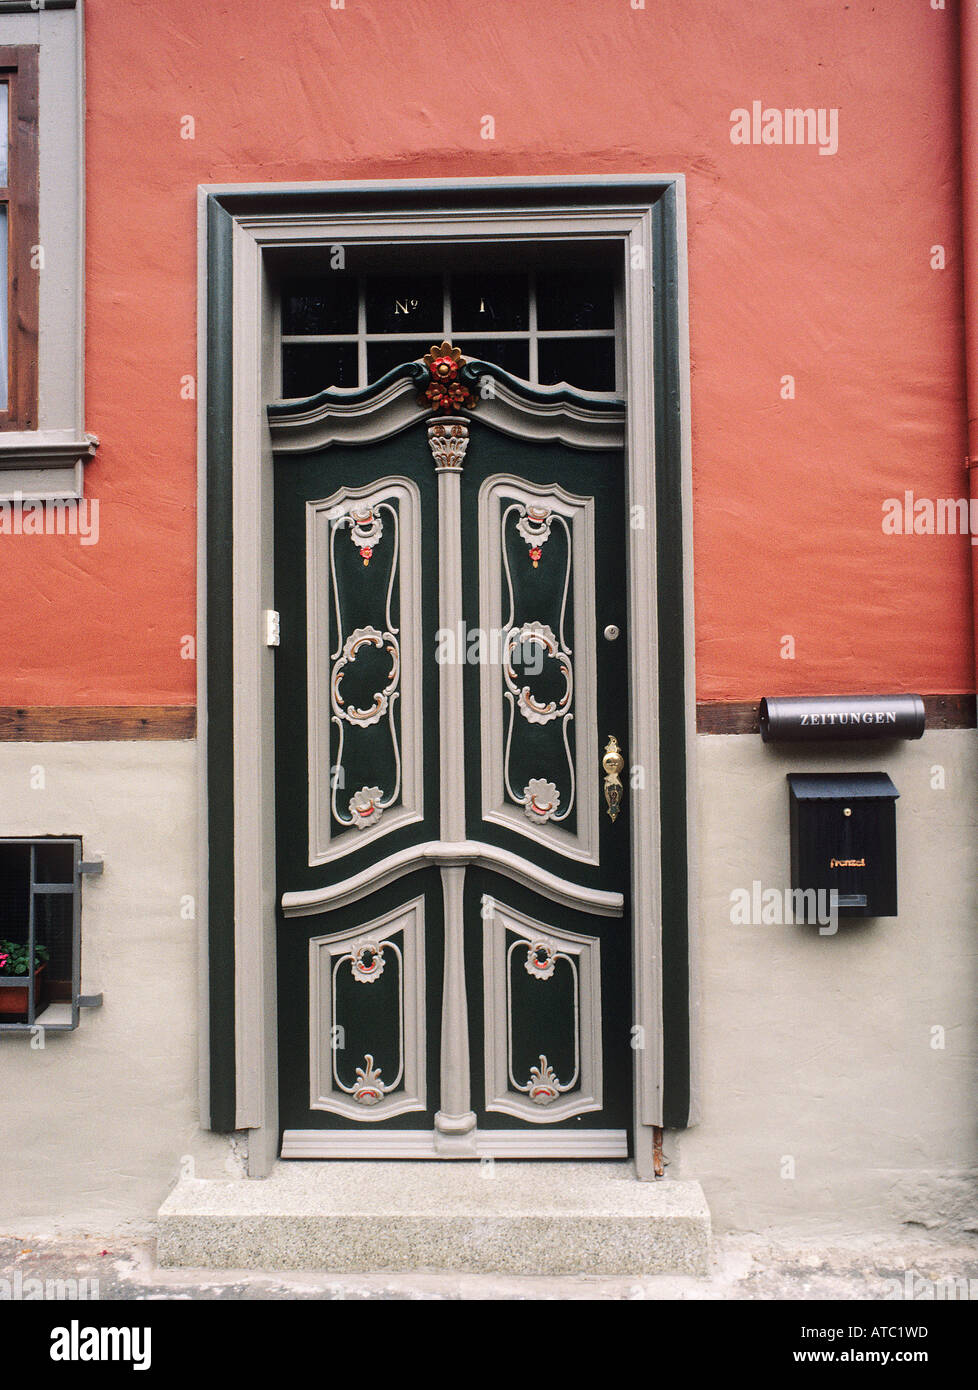 Art Deco Style Decoration On A Heavy Front Door Decorating The Facade Of A  Building In Erfurt